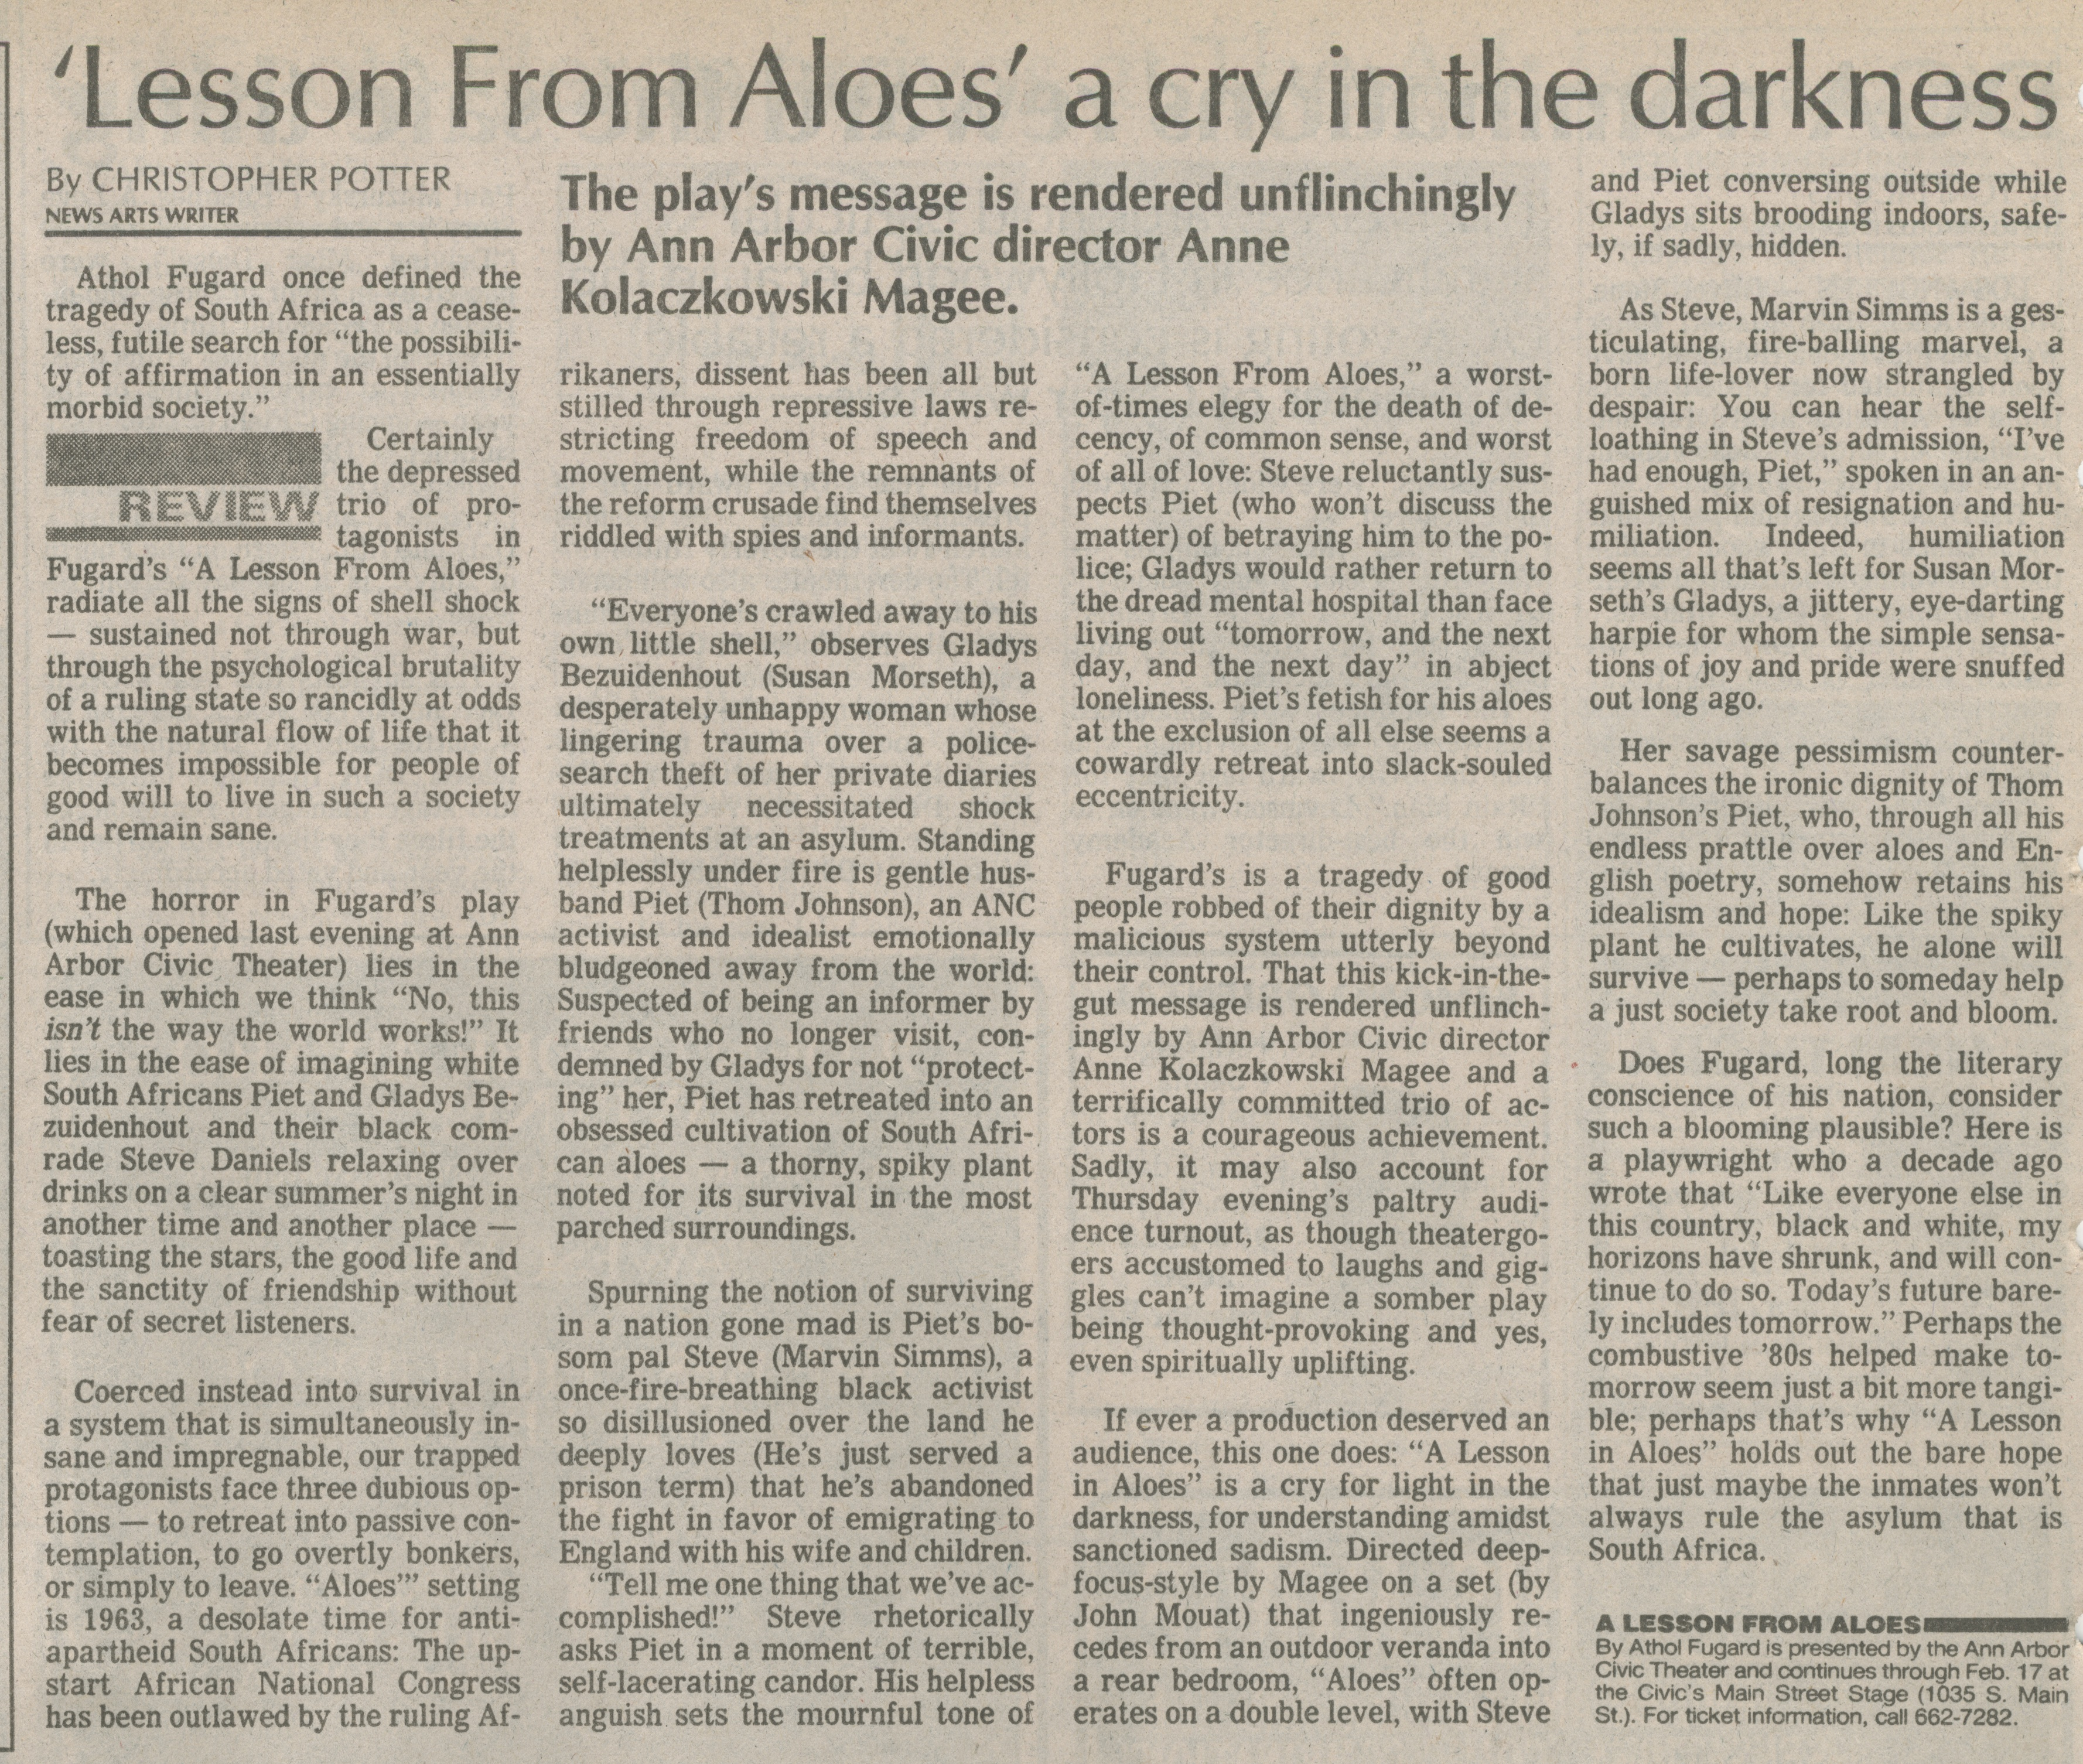 'Lesson From Aloes' A Cry In The Darkness image